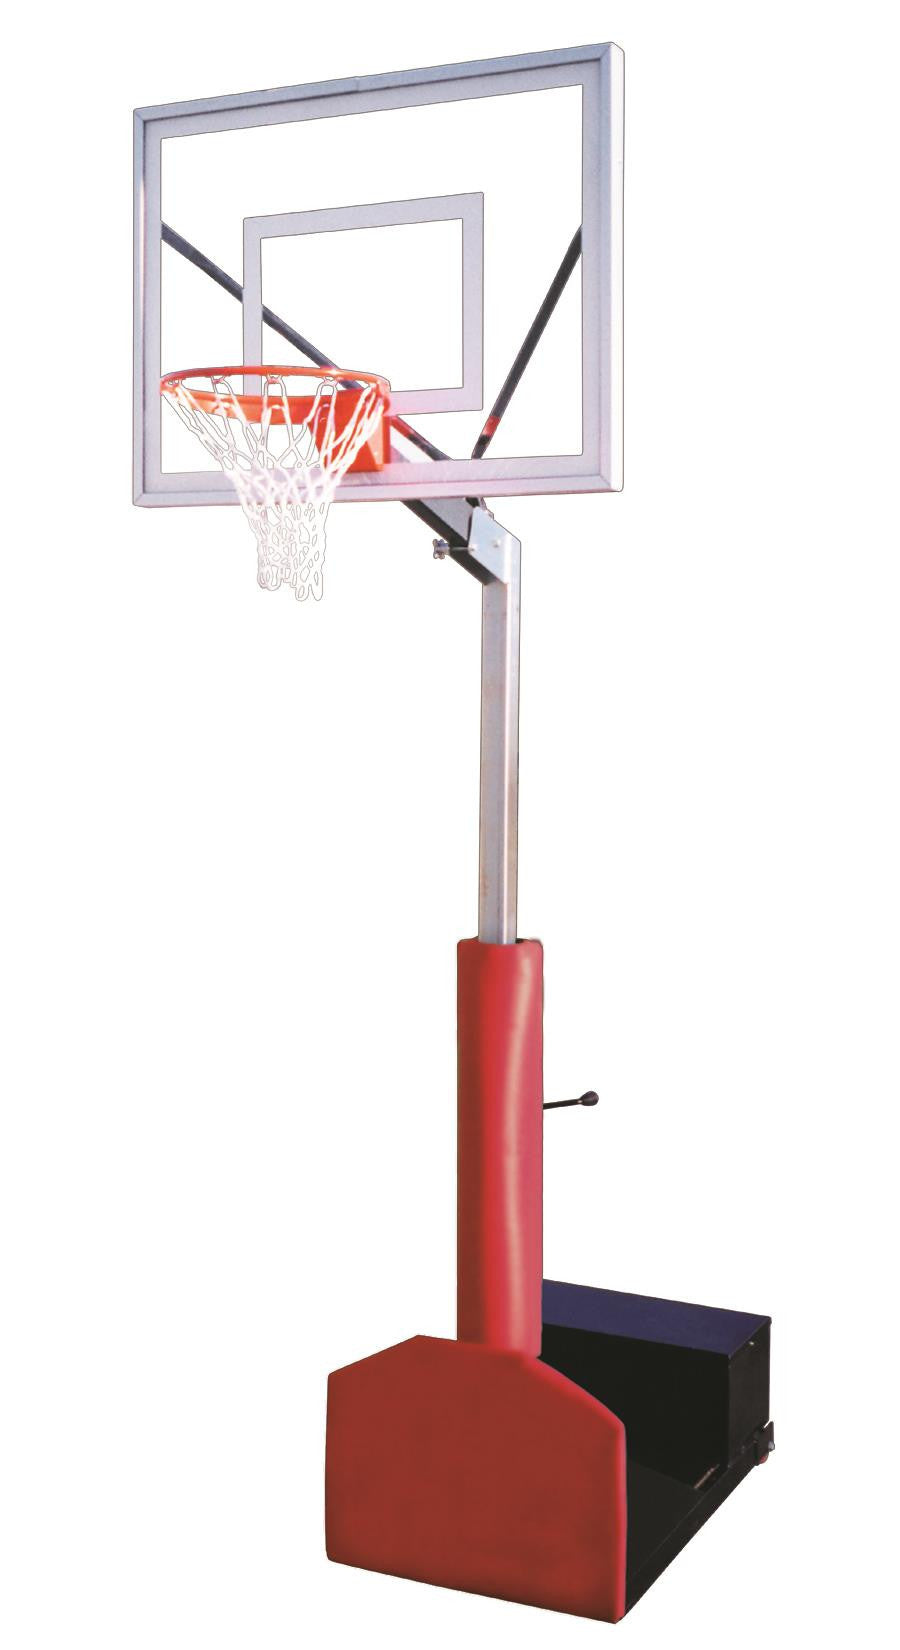 First Team Rampage II Adjustable Portable Basketball Hoop 48 inch Acrylic